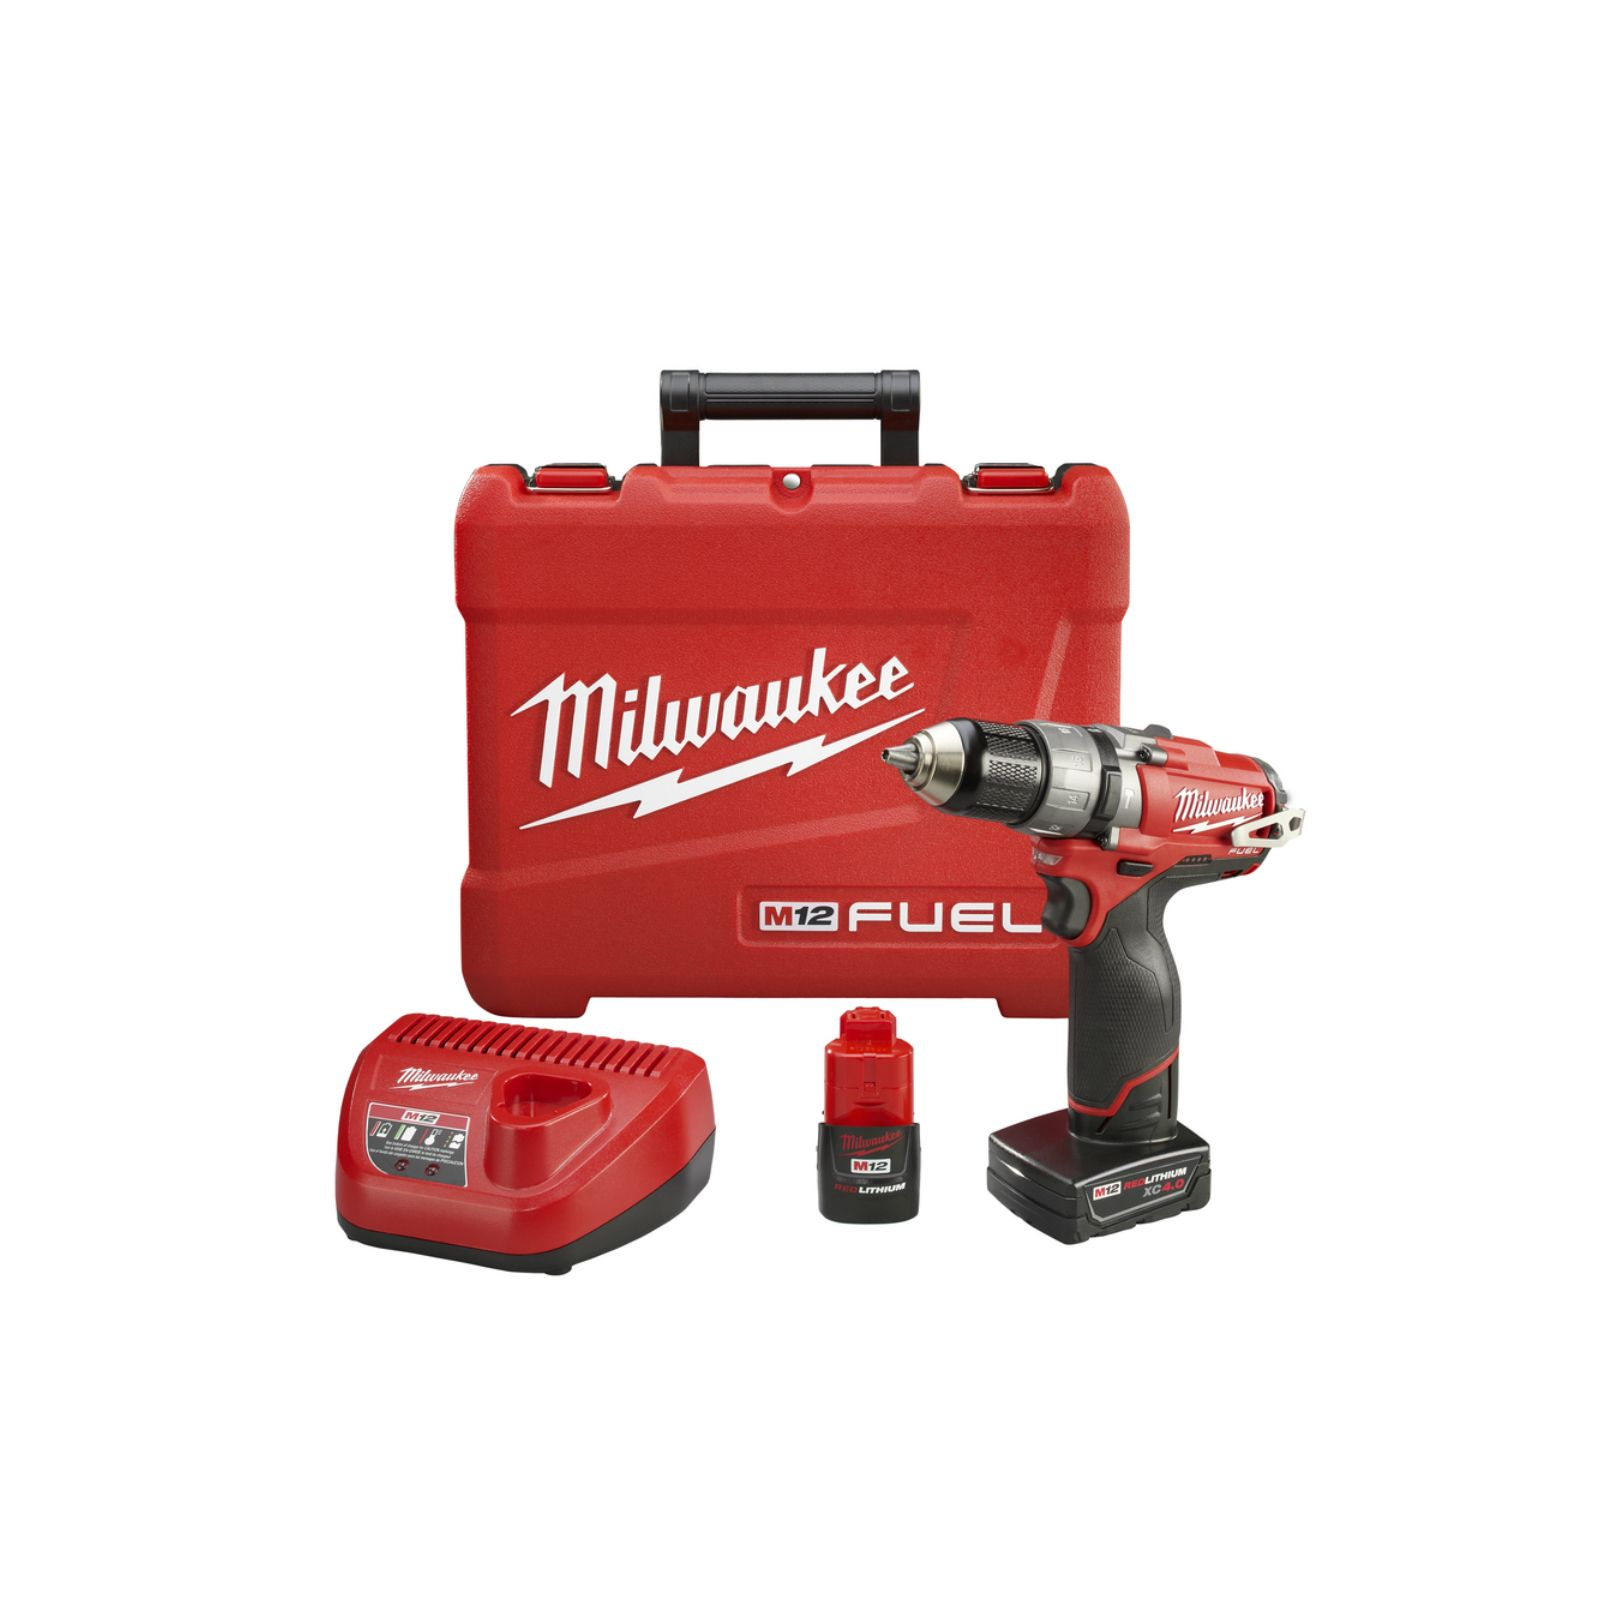 "Milwaukee Tool 2404-22 - M12 FUEL 1/2"" Hammer Drill/Driver Kit"